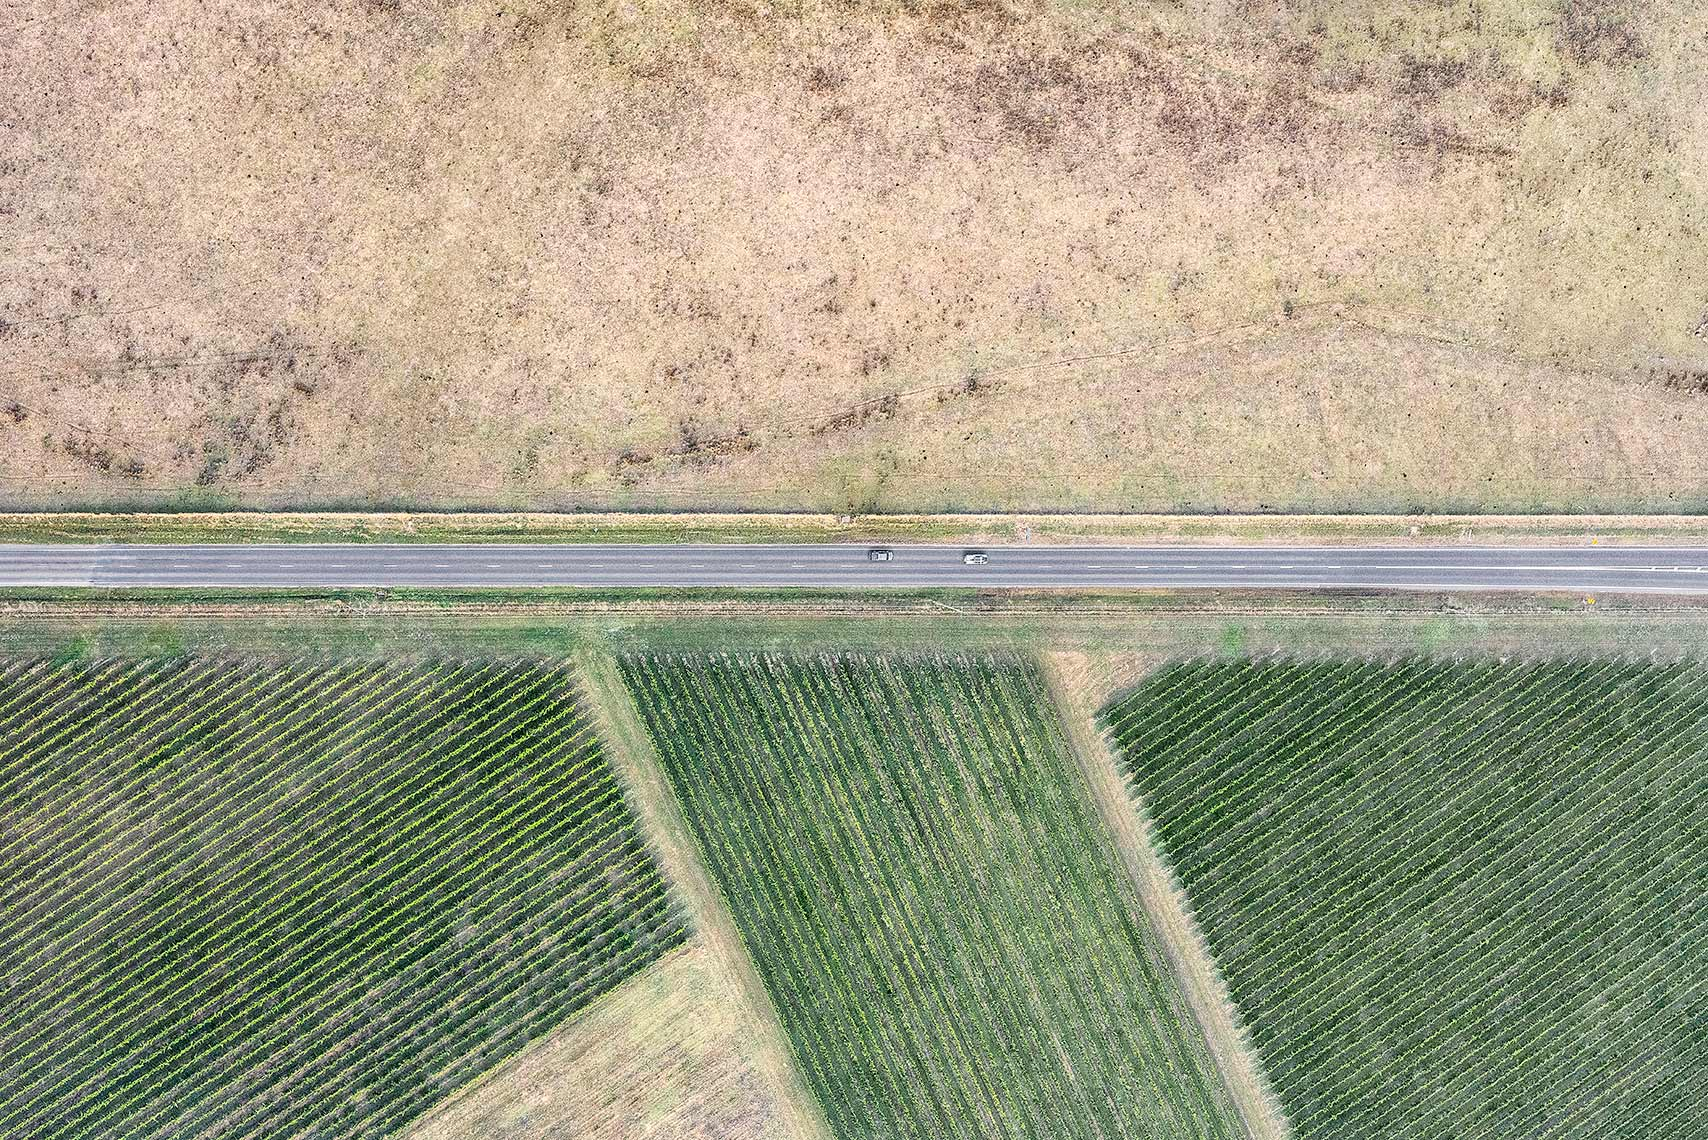 Zoe Wetherall / Aerial Landscape / Road Trip